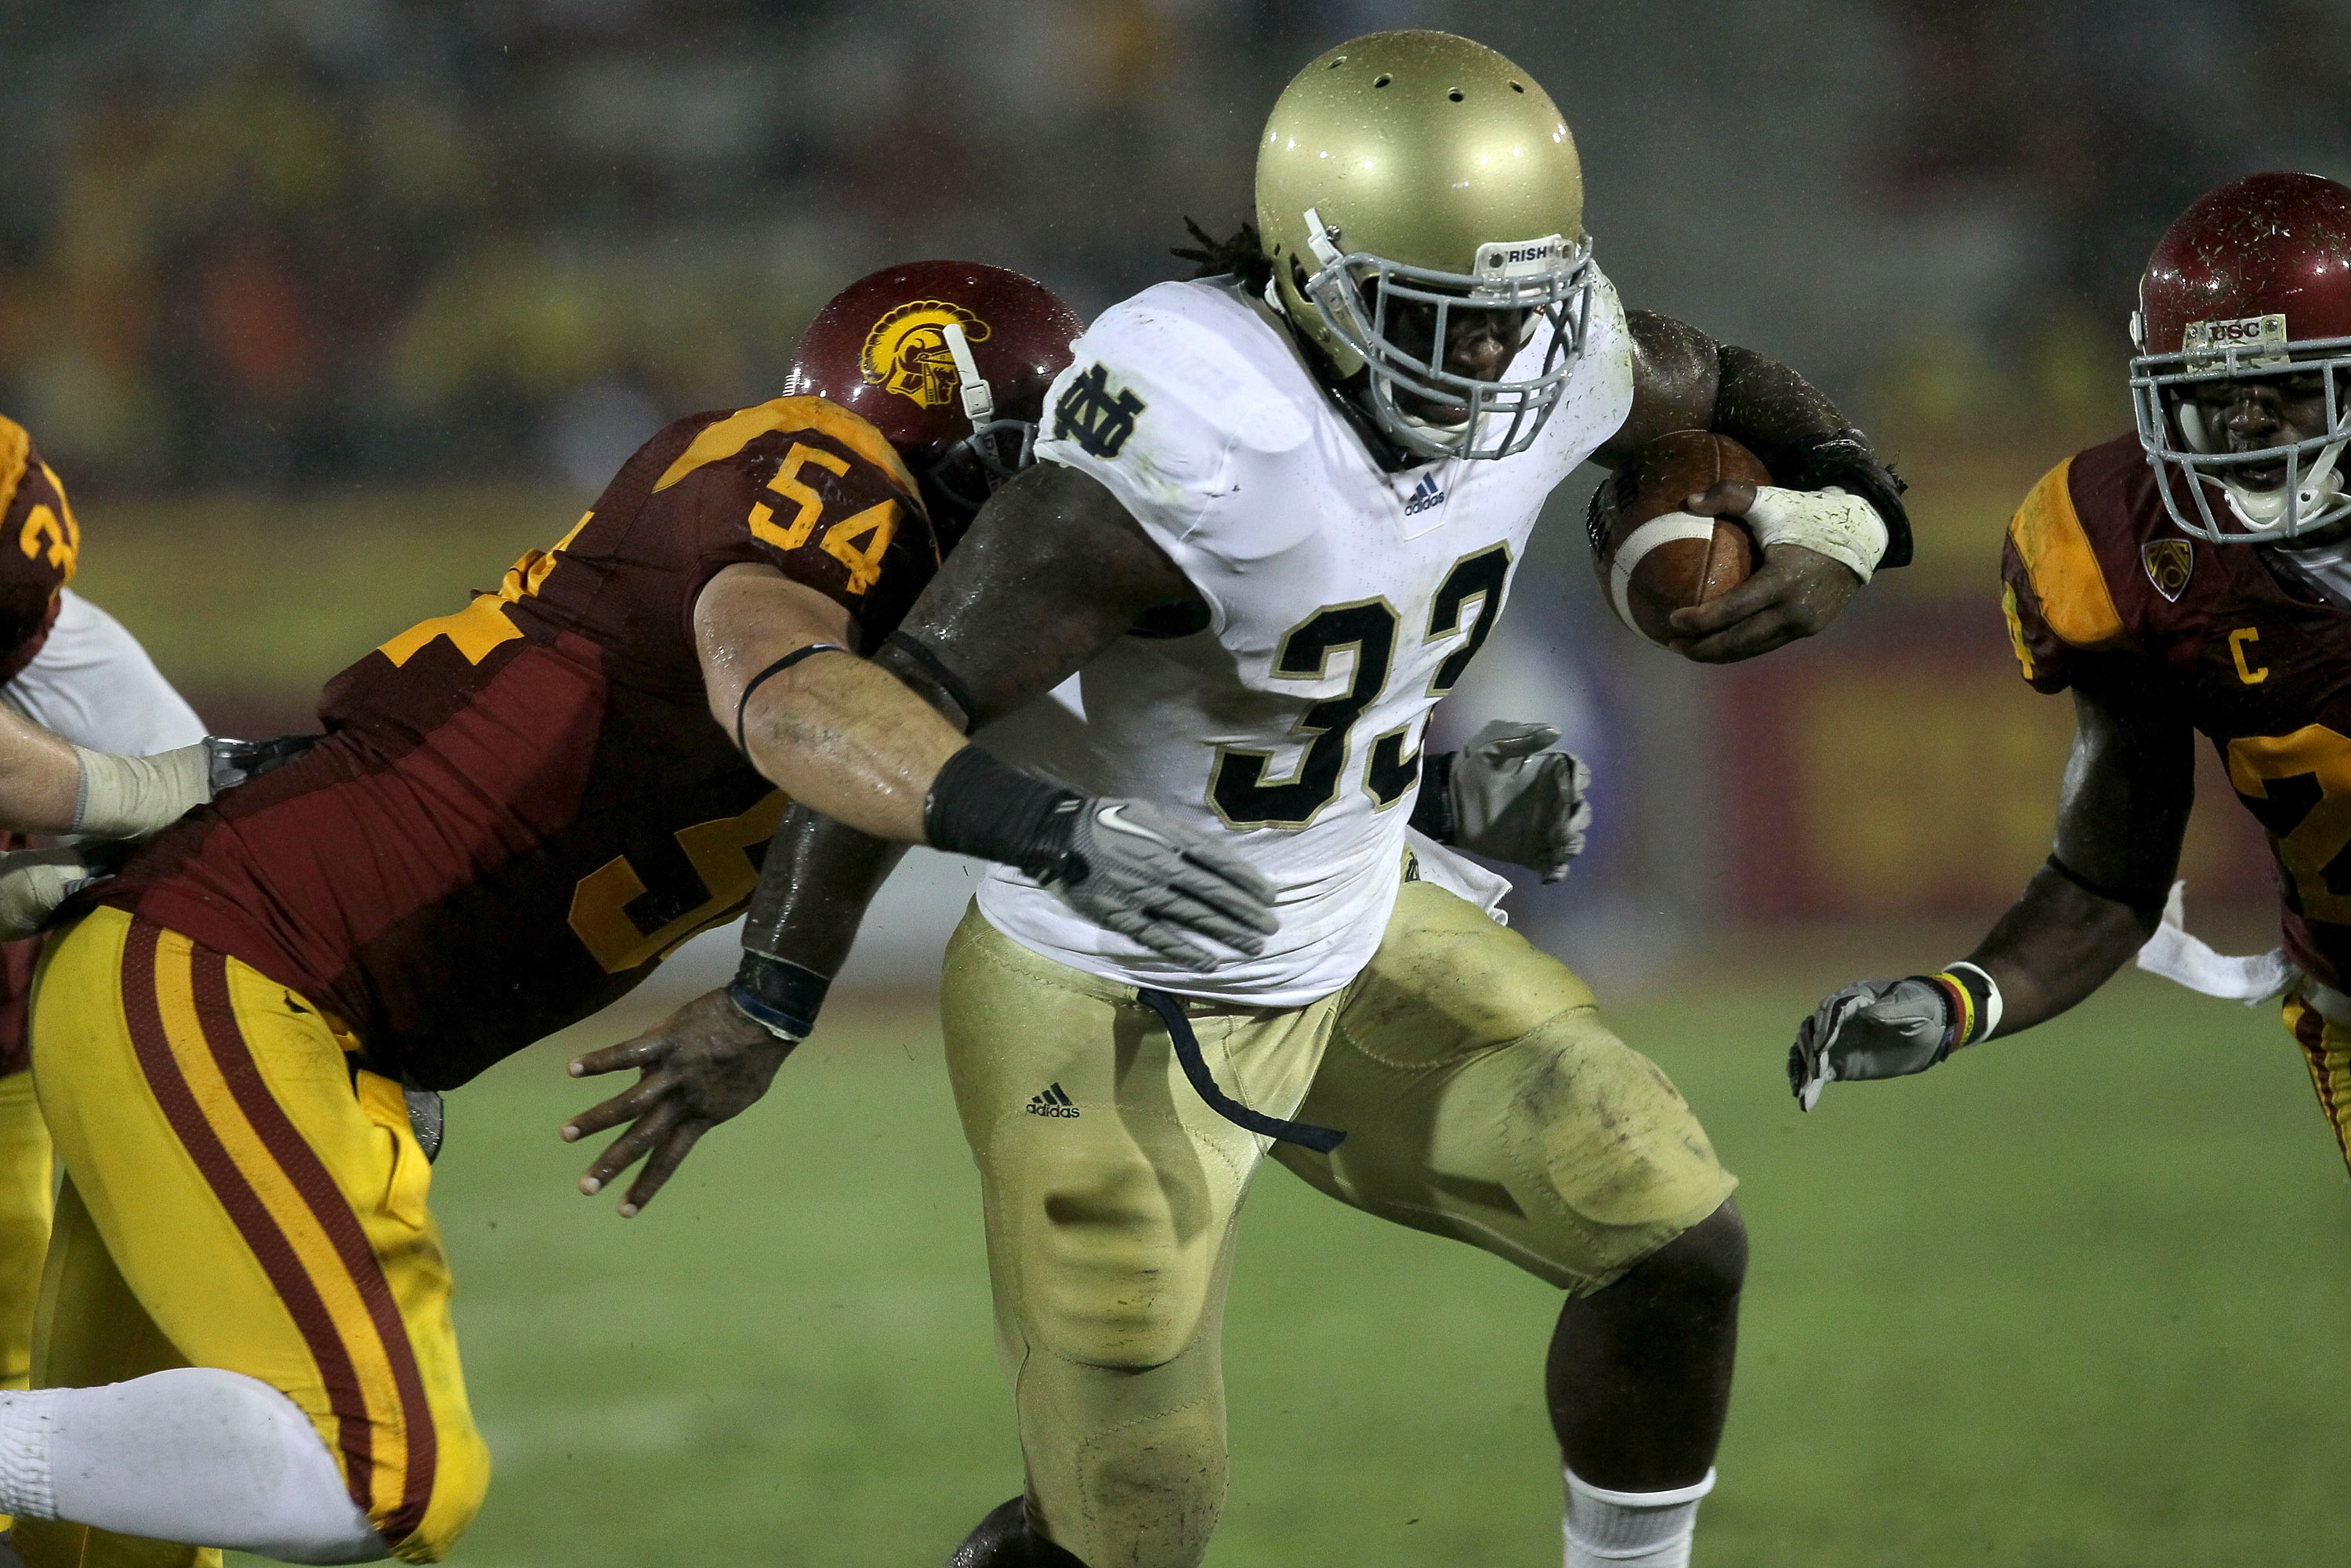 LOS ANGELES, CA - NOVEMBER 27:  Running back Robert Hughes #33 of the Notre Dame Fighting Irish carries the ball against linebacker Chris Galippo #54 of the USC Trojans at the Los Angeles Memorial Coliseum on November 27, 2010 in Los Angeles, California.